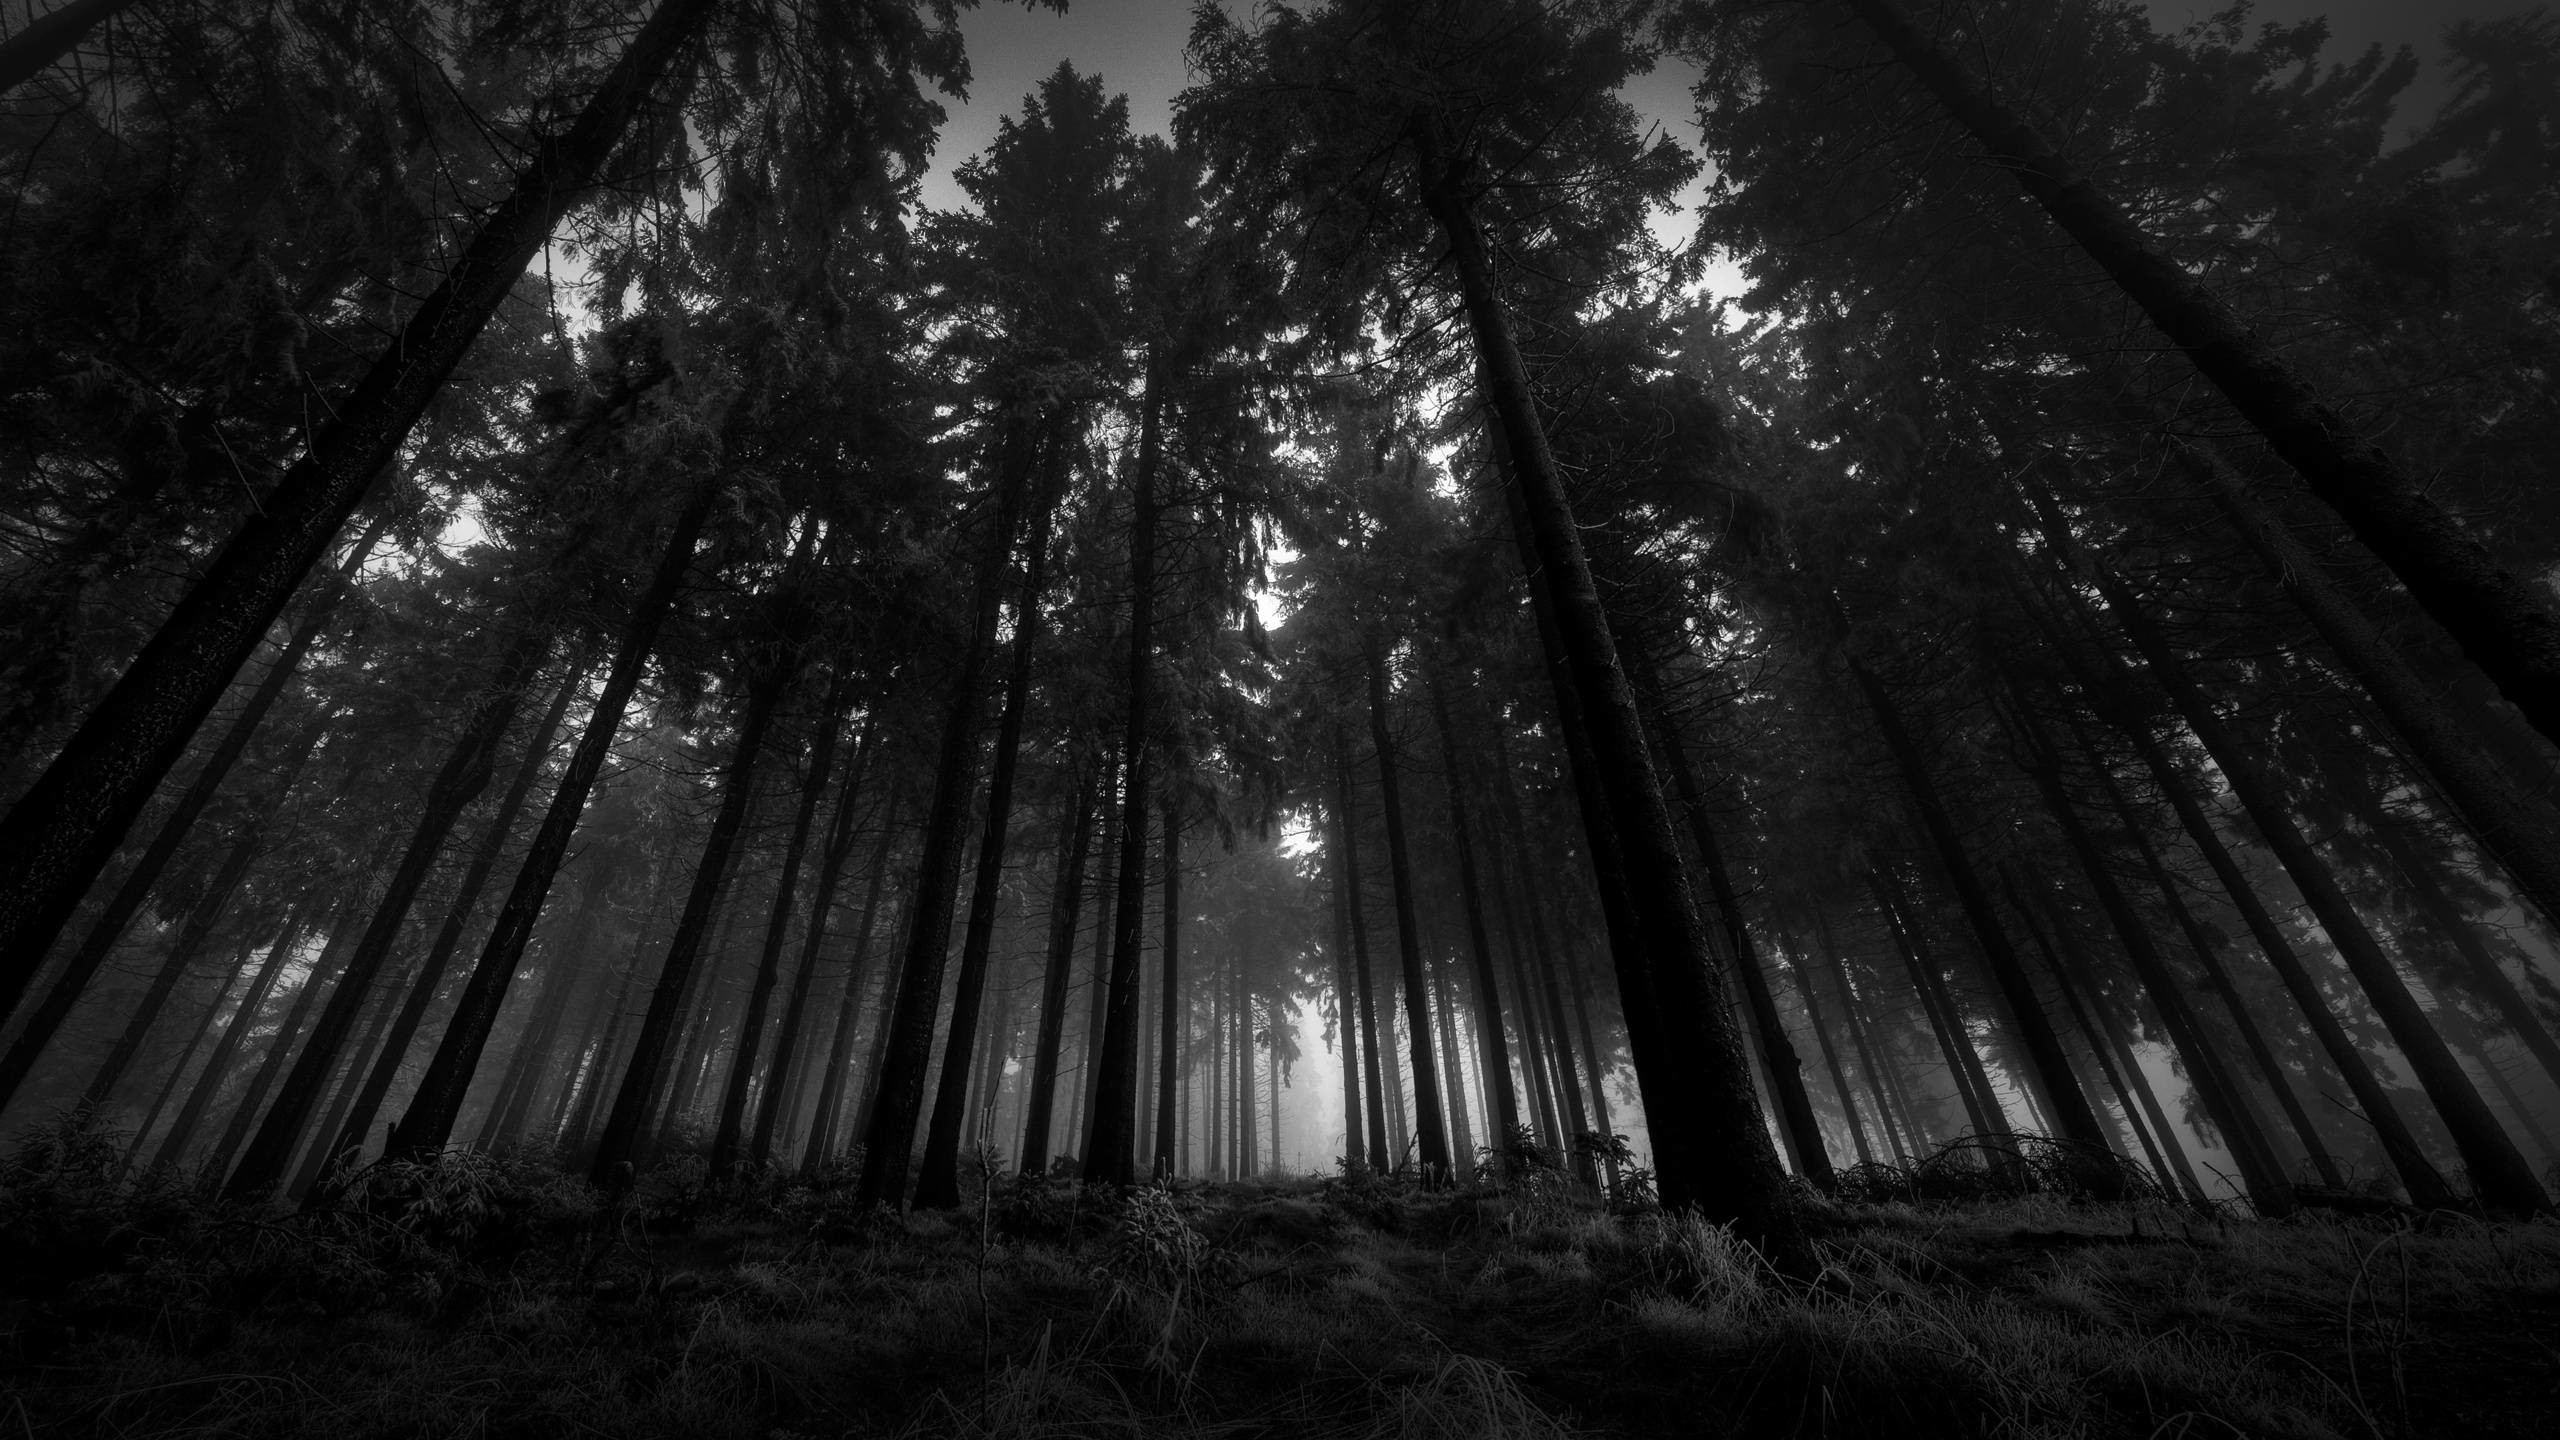 2560x1440 Dark Forest HD Desktop Background Wallpaper - HD Wallpapers